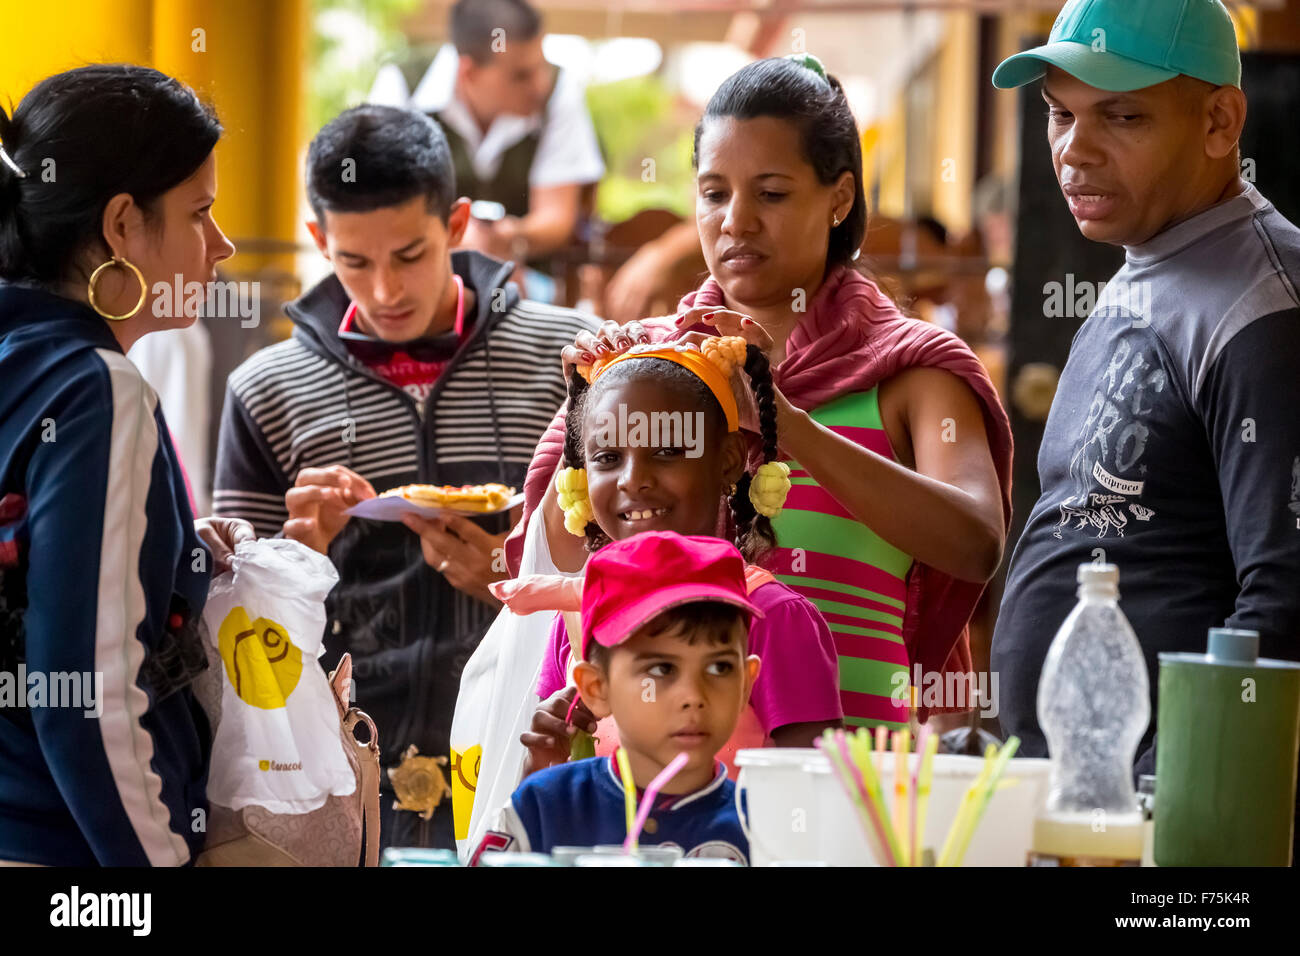 young girl with plaits on a lofty Cuban Pizza Stand with her family, Viñales, Cuba, Pinar del Rio, Cuba, - Stock Image